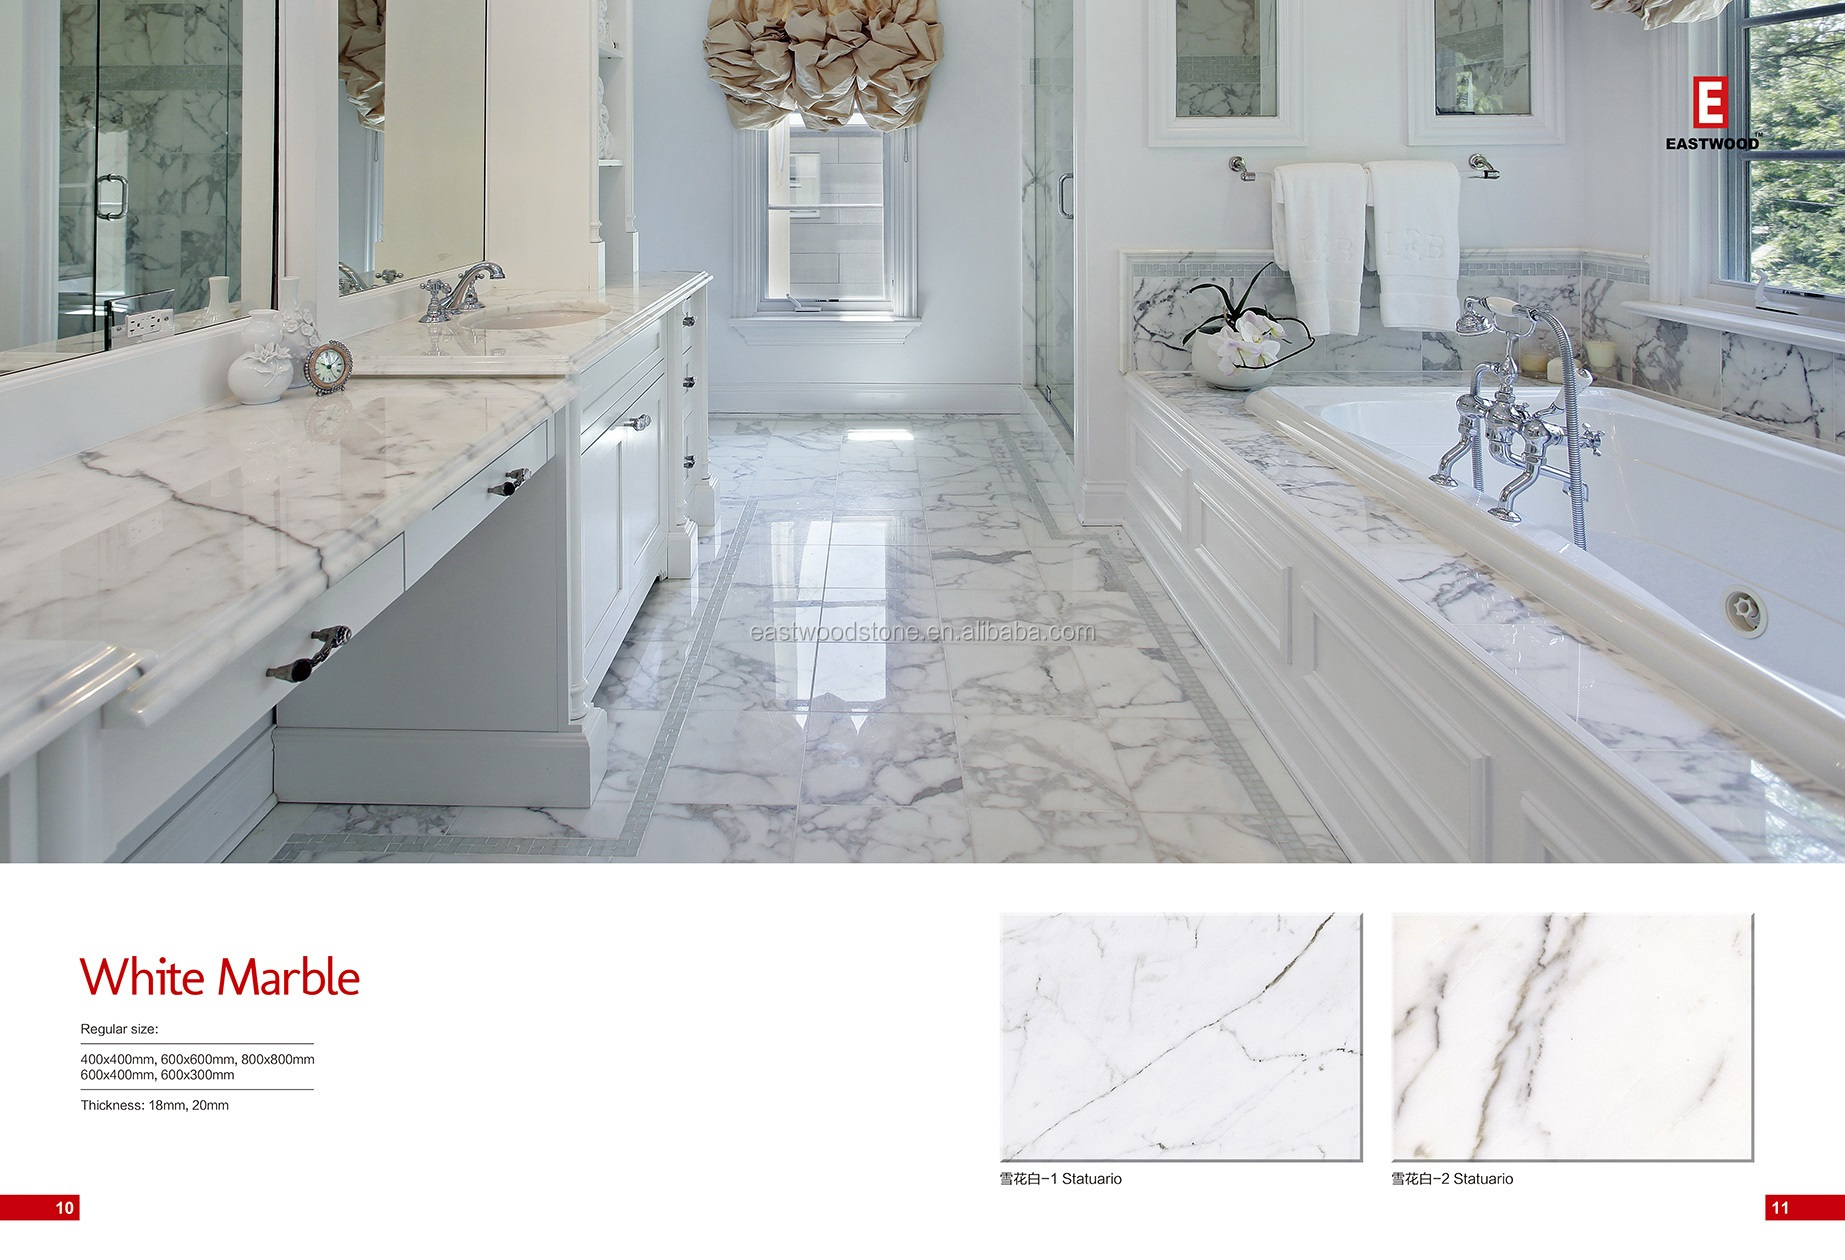 Excellent Italy marble price statuario for decoration